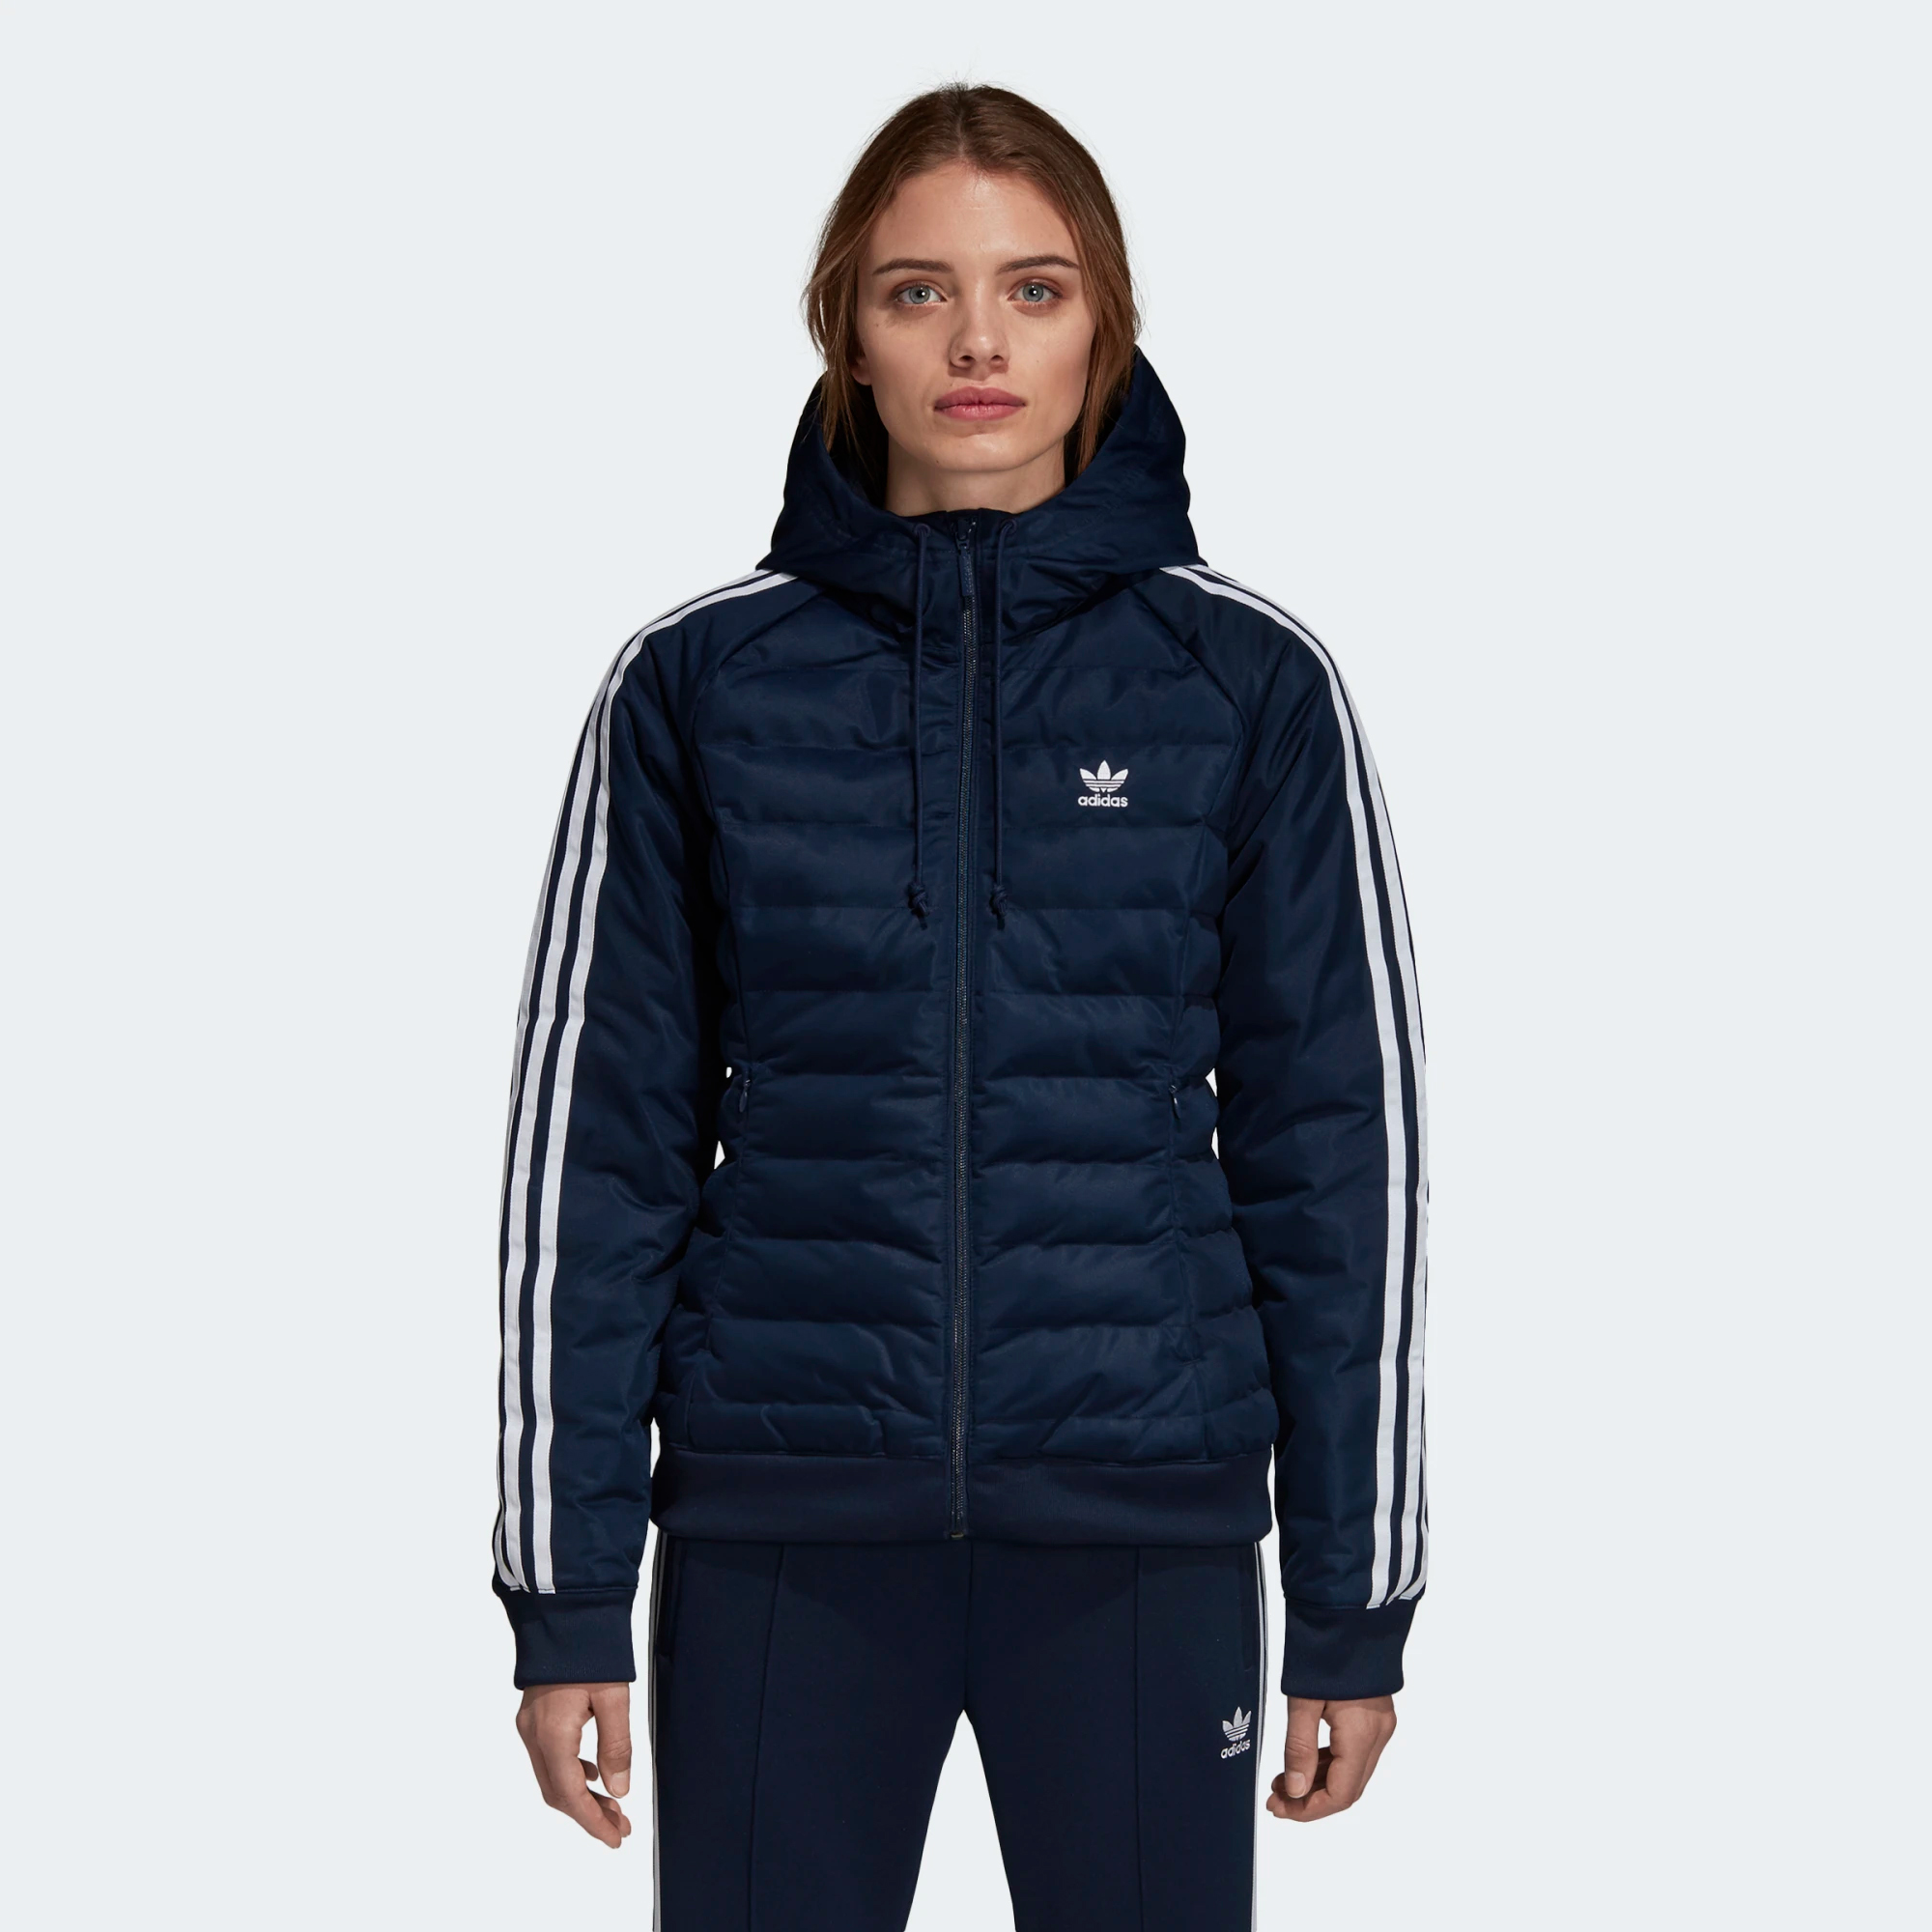 83111cce5cde adidas Originals Wmns Slim Jacket - SPORTING GOODS Sports Jackets ...